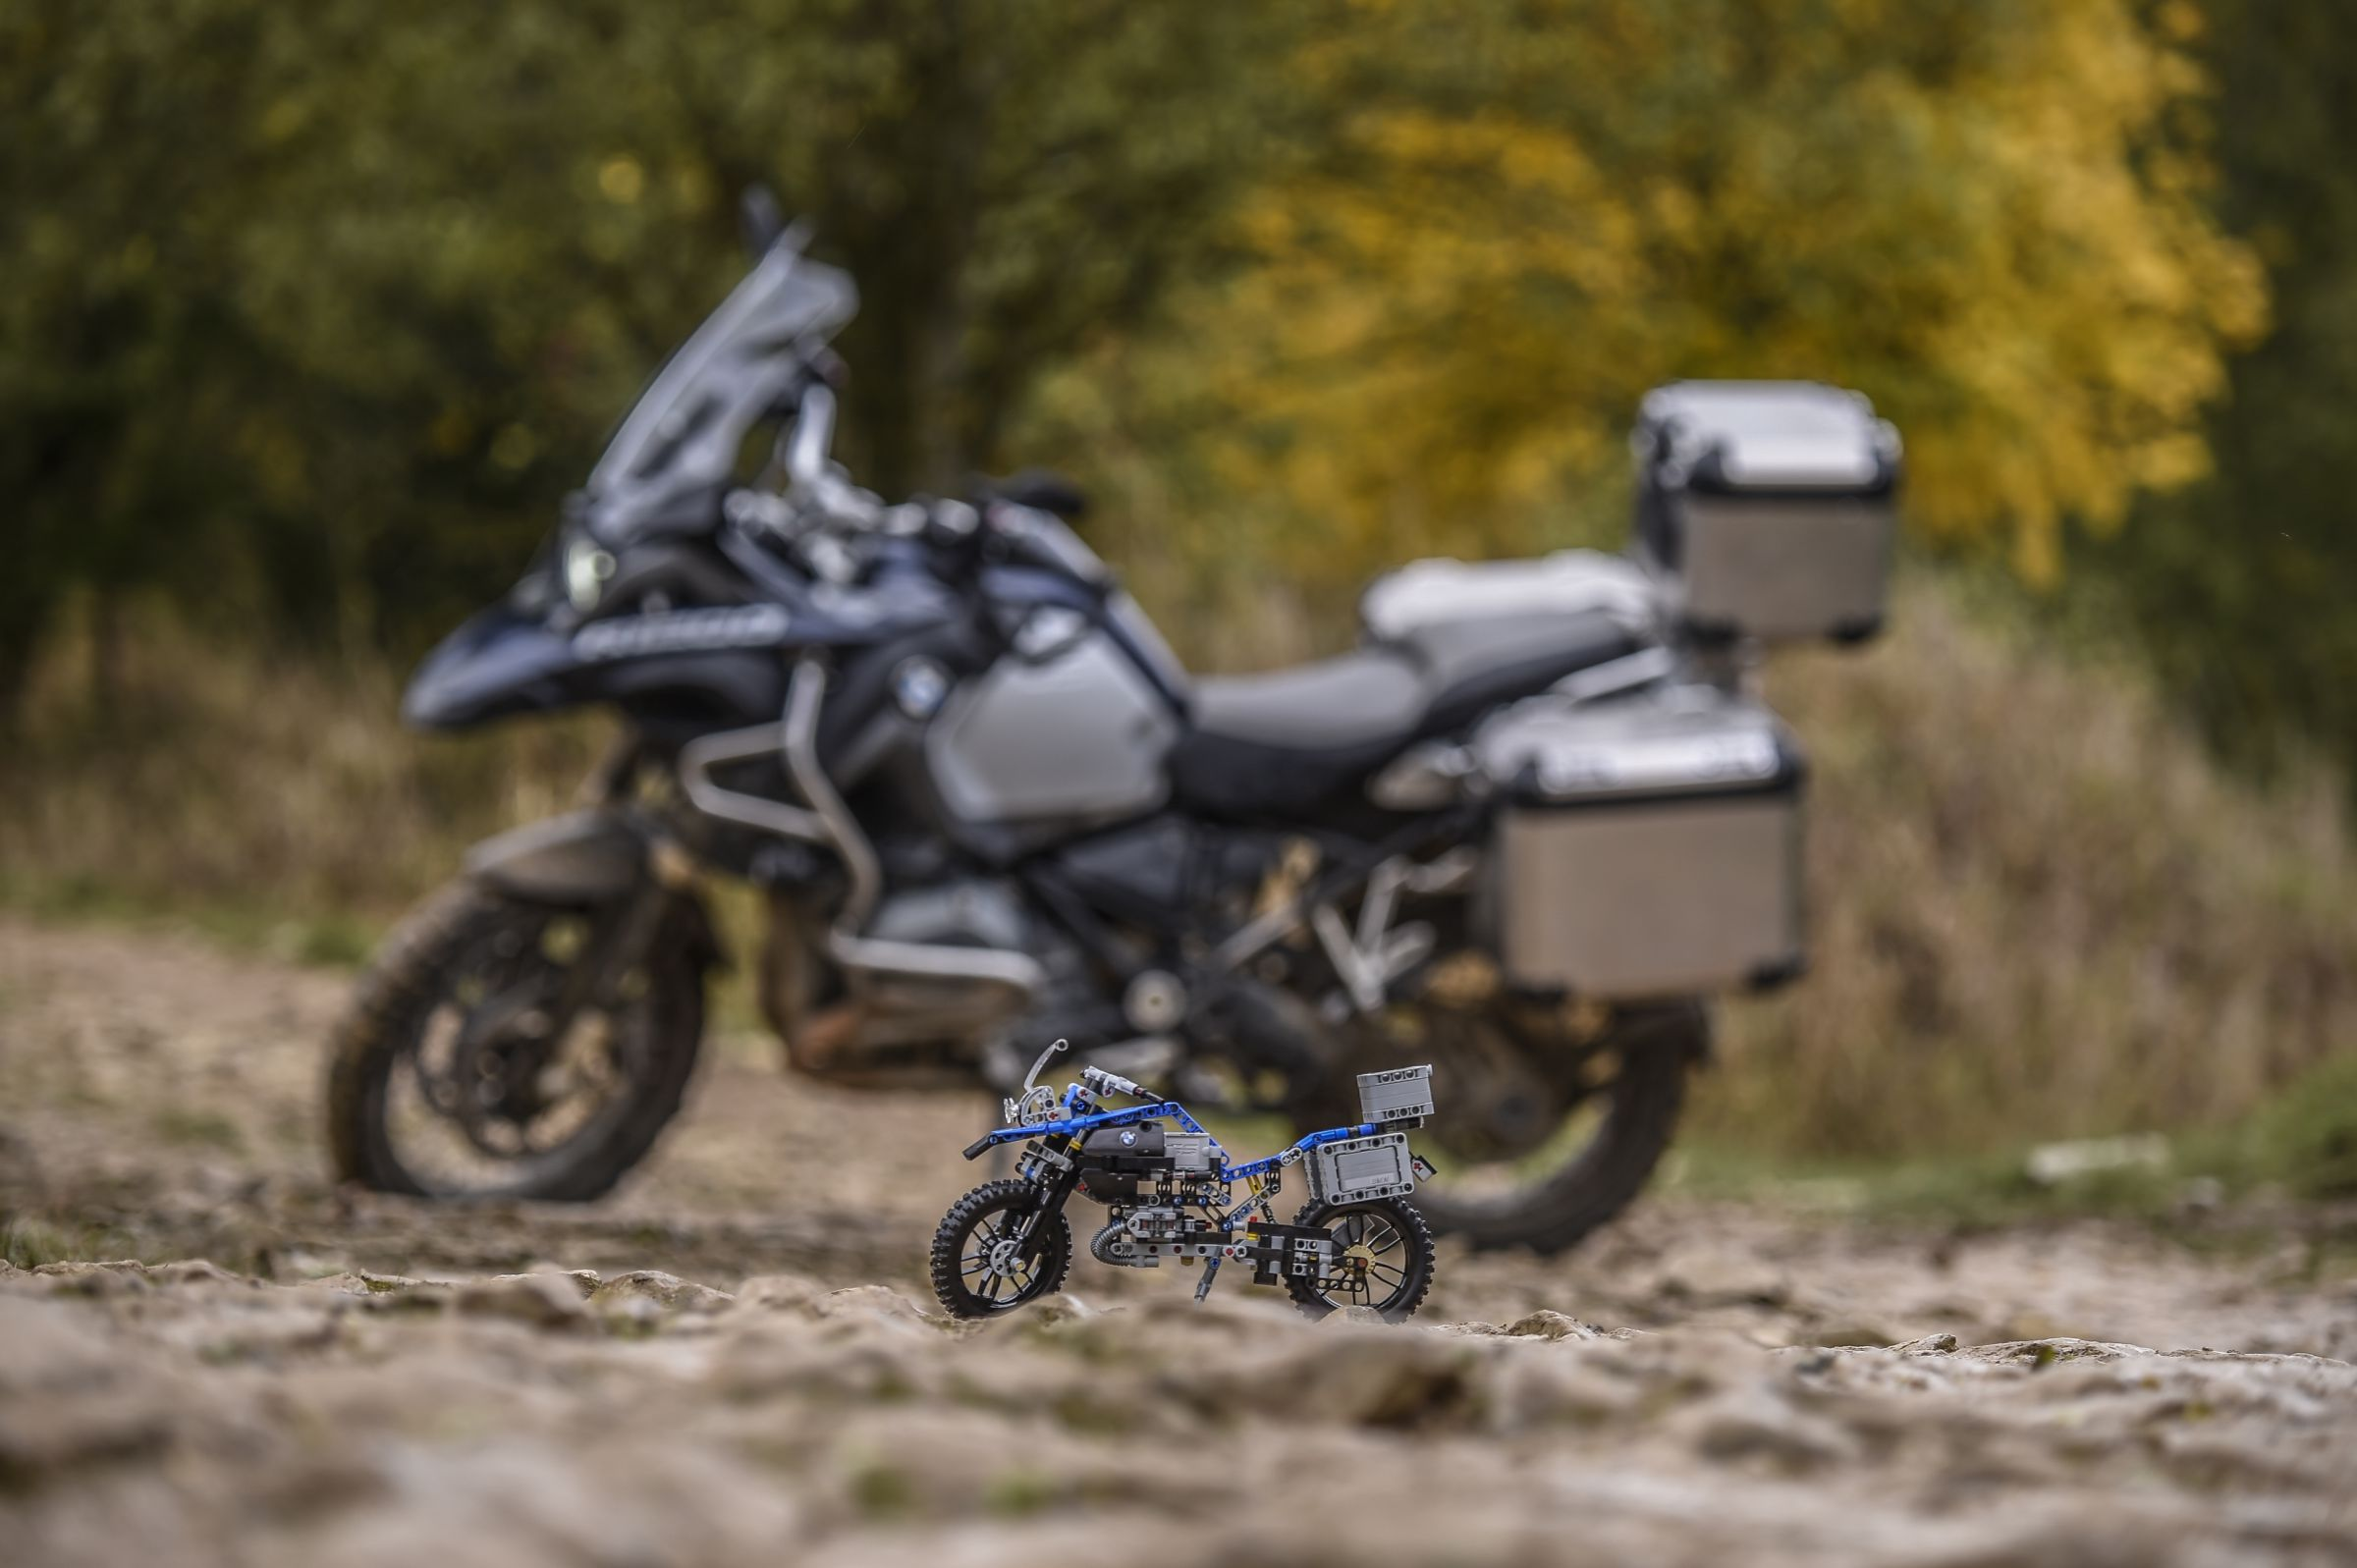 LEGO Technic 42063 BMW R 1200 GS Adventure LEGO_42063_bmw-R-1200-GS-Adventure_img10.jpg